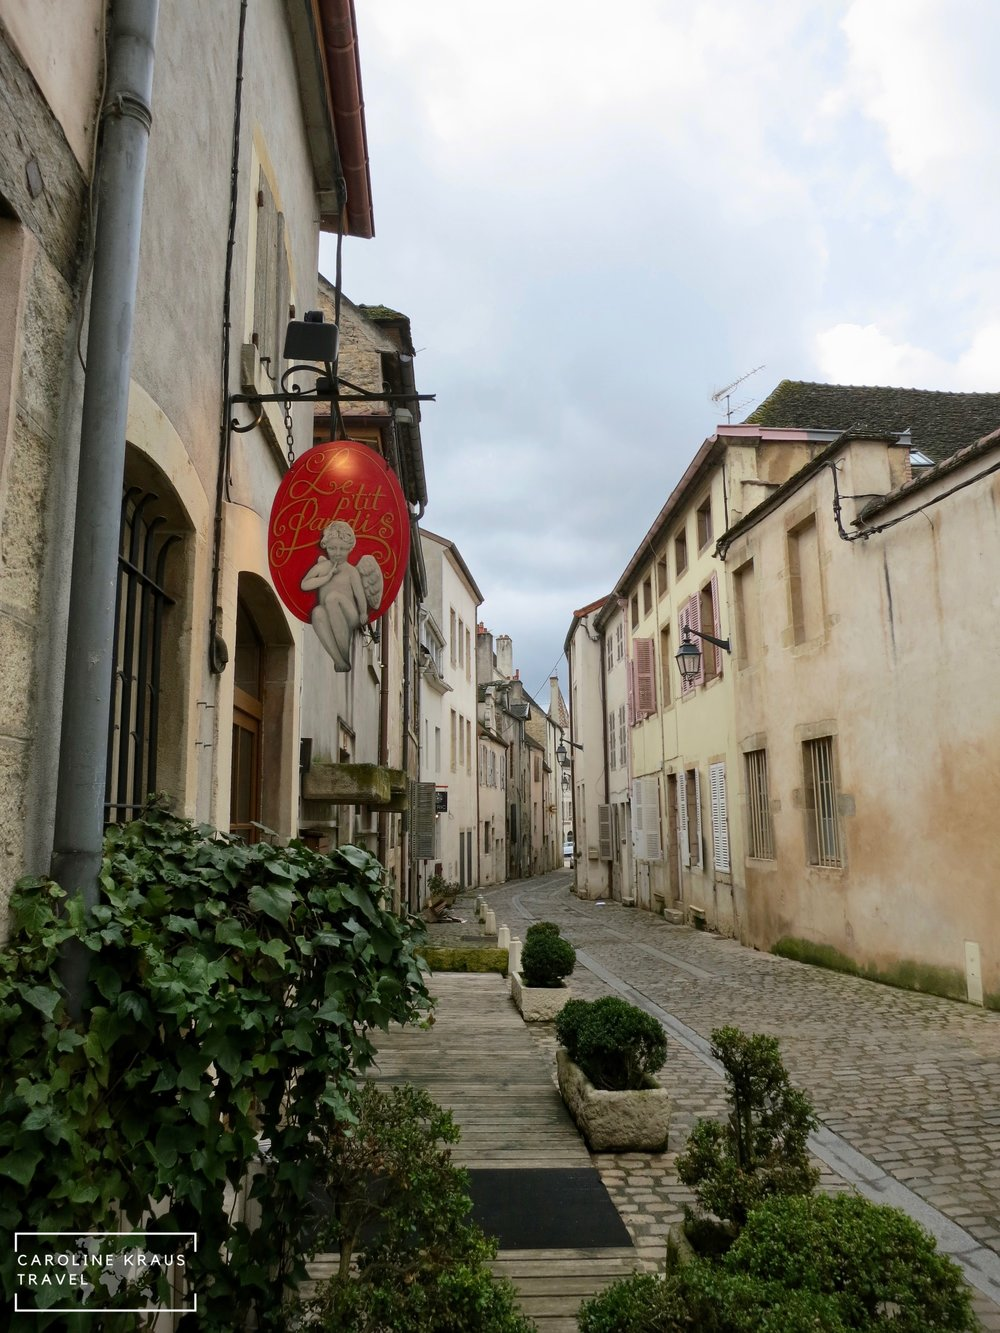 The streets of Beaune